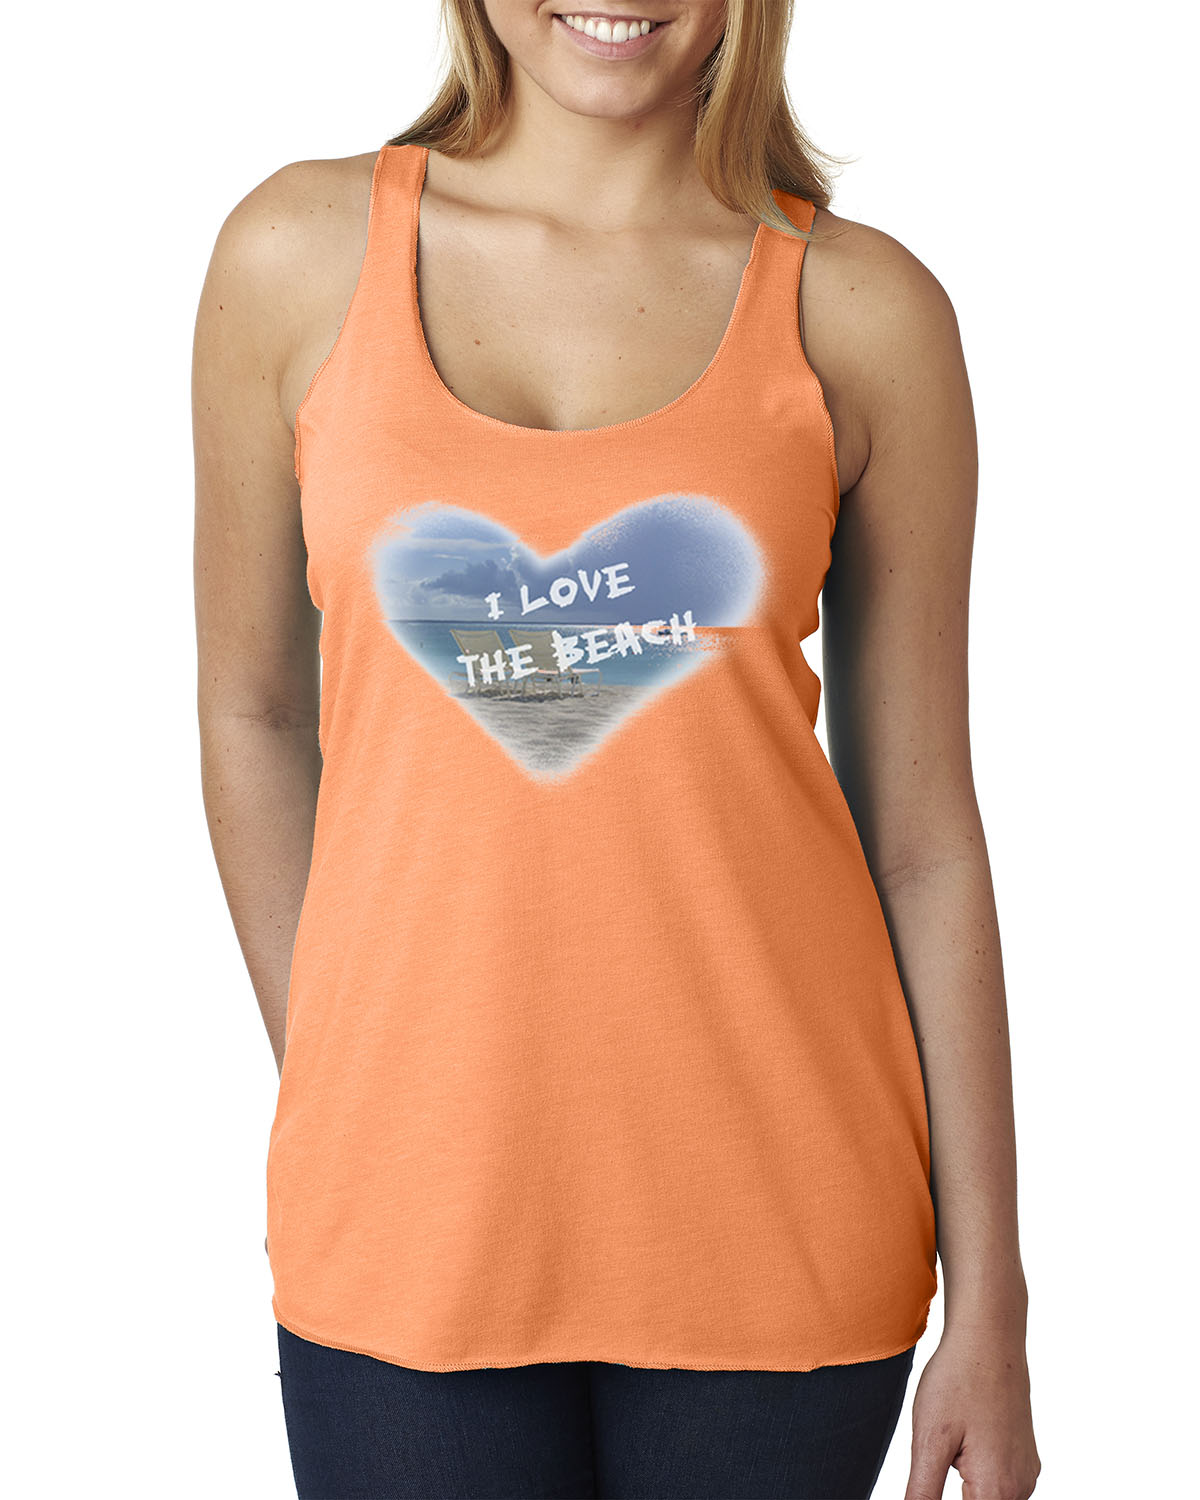 Women's tri-blend racer-back tank top (Orange)